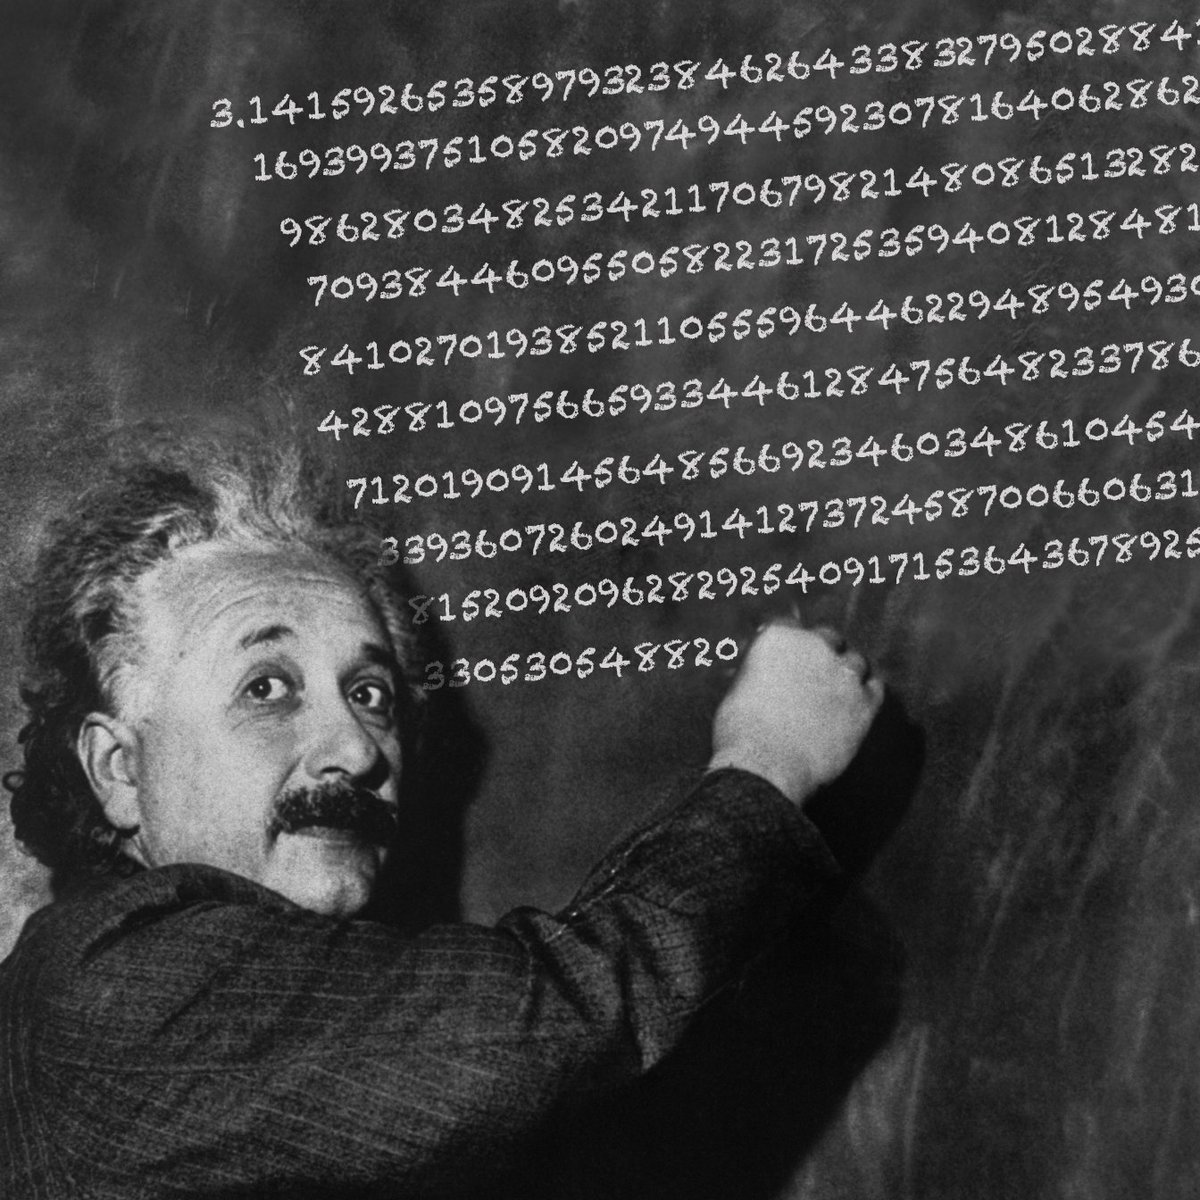 Happy #PiDay and @AlbertEinstein's birthday! https://t.co/ckACMMiZyK